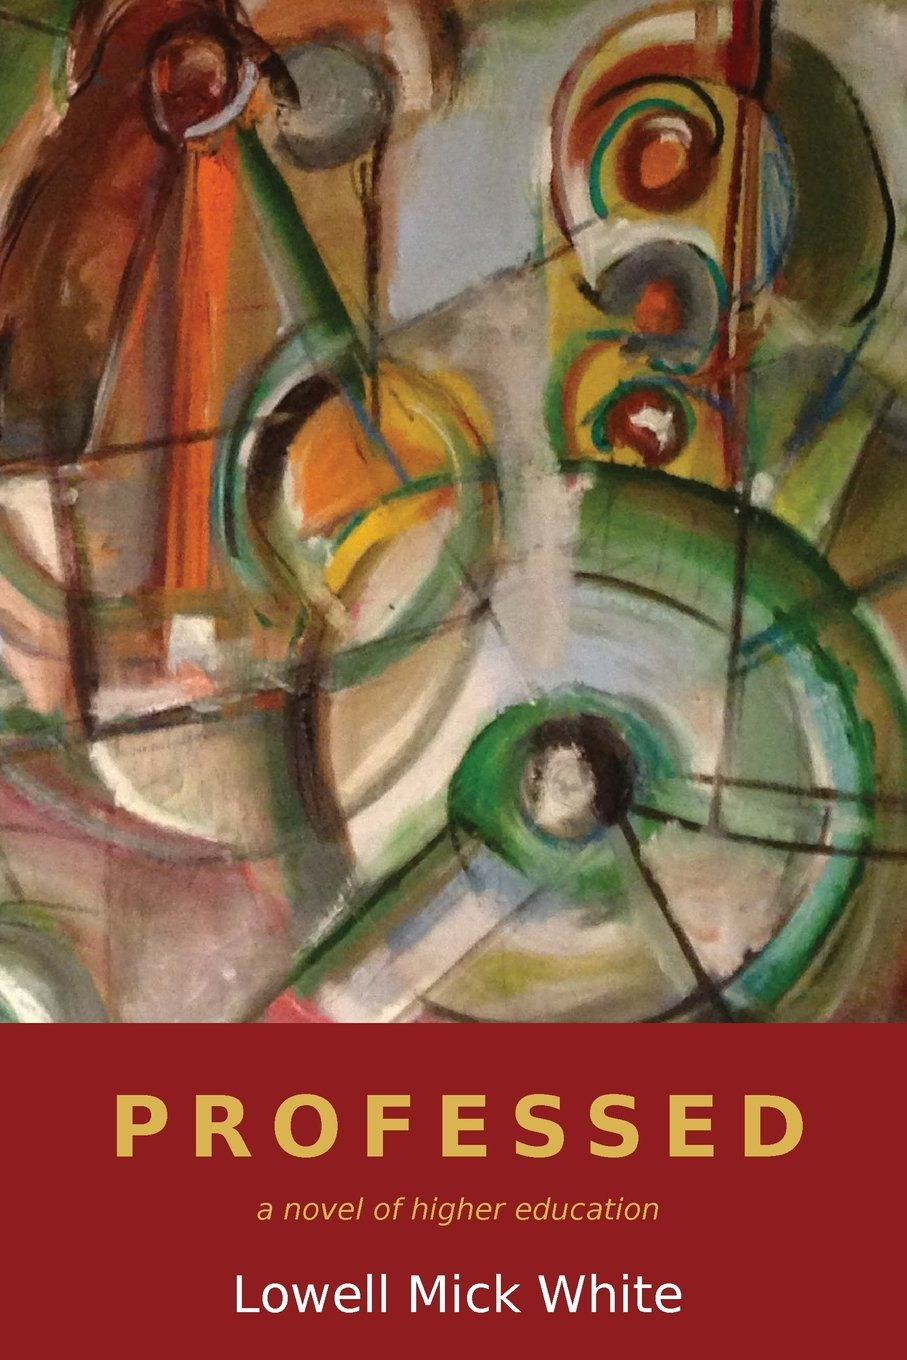 Professed, Lowell Mick White, novel, University of Texas, best academic satire